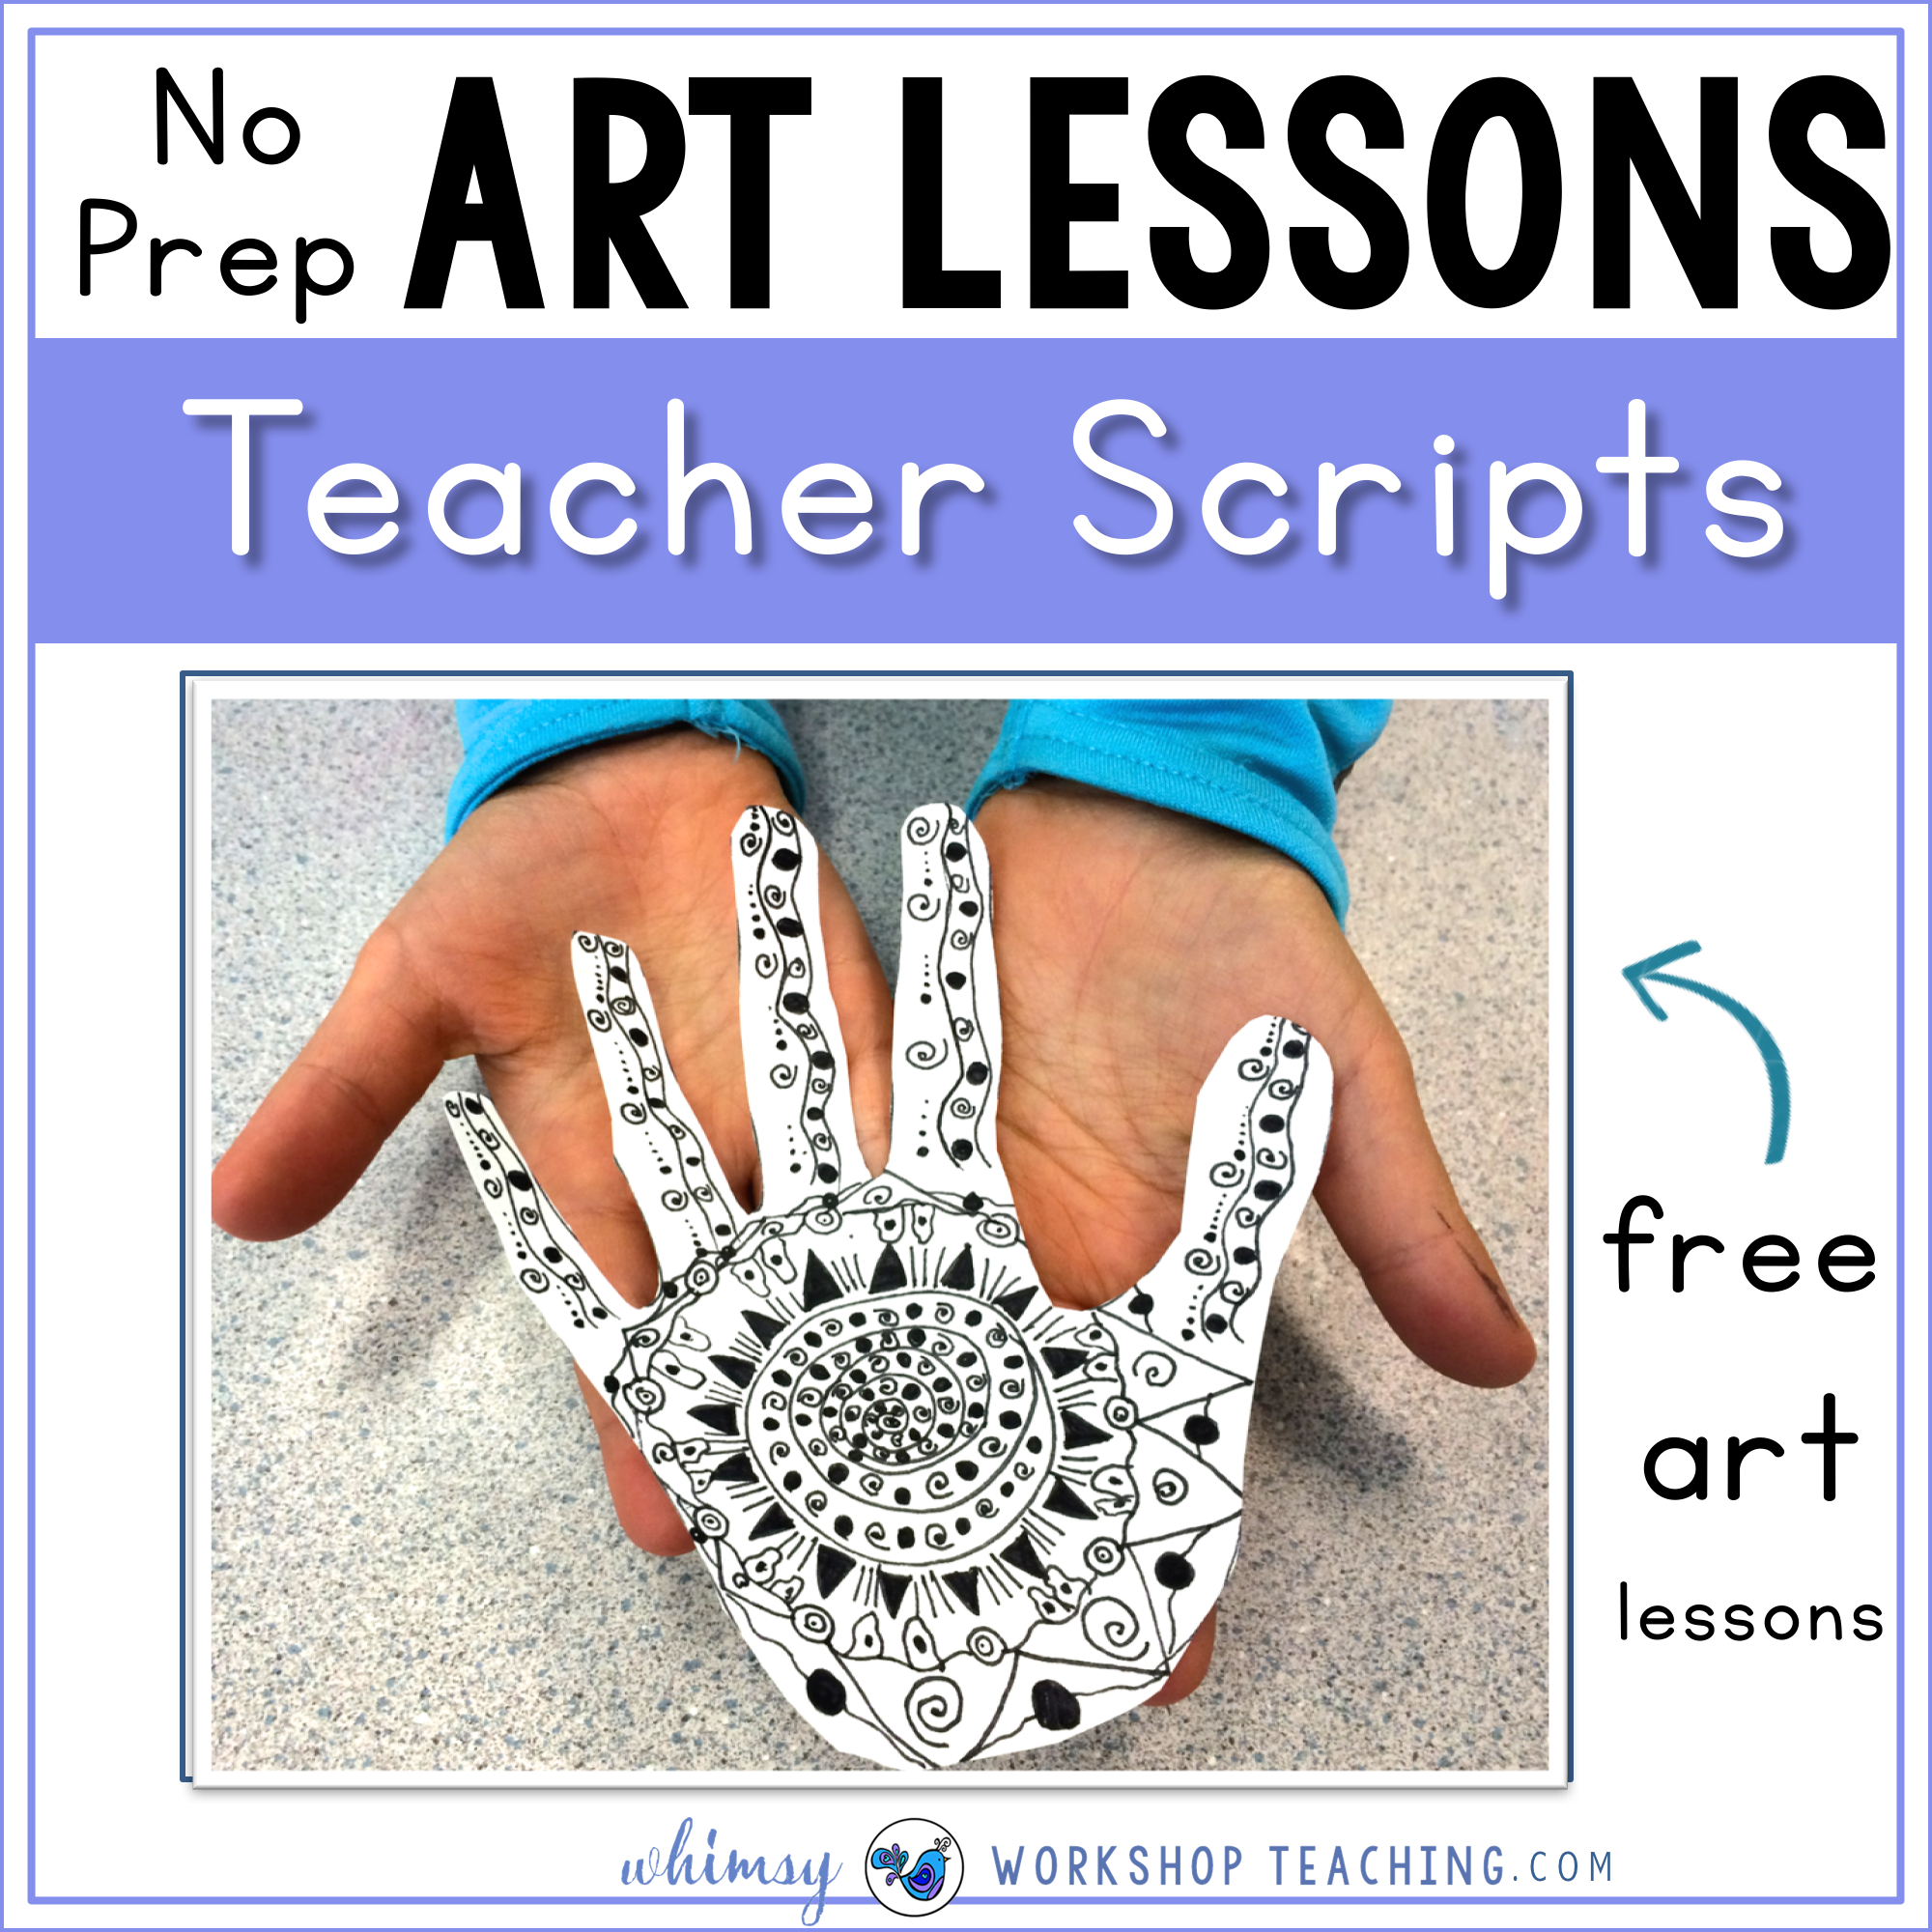 No prep art lessons using read aloud scripts